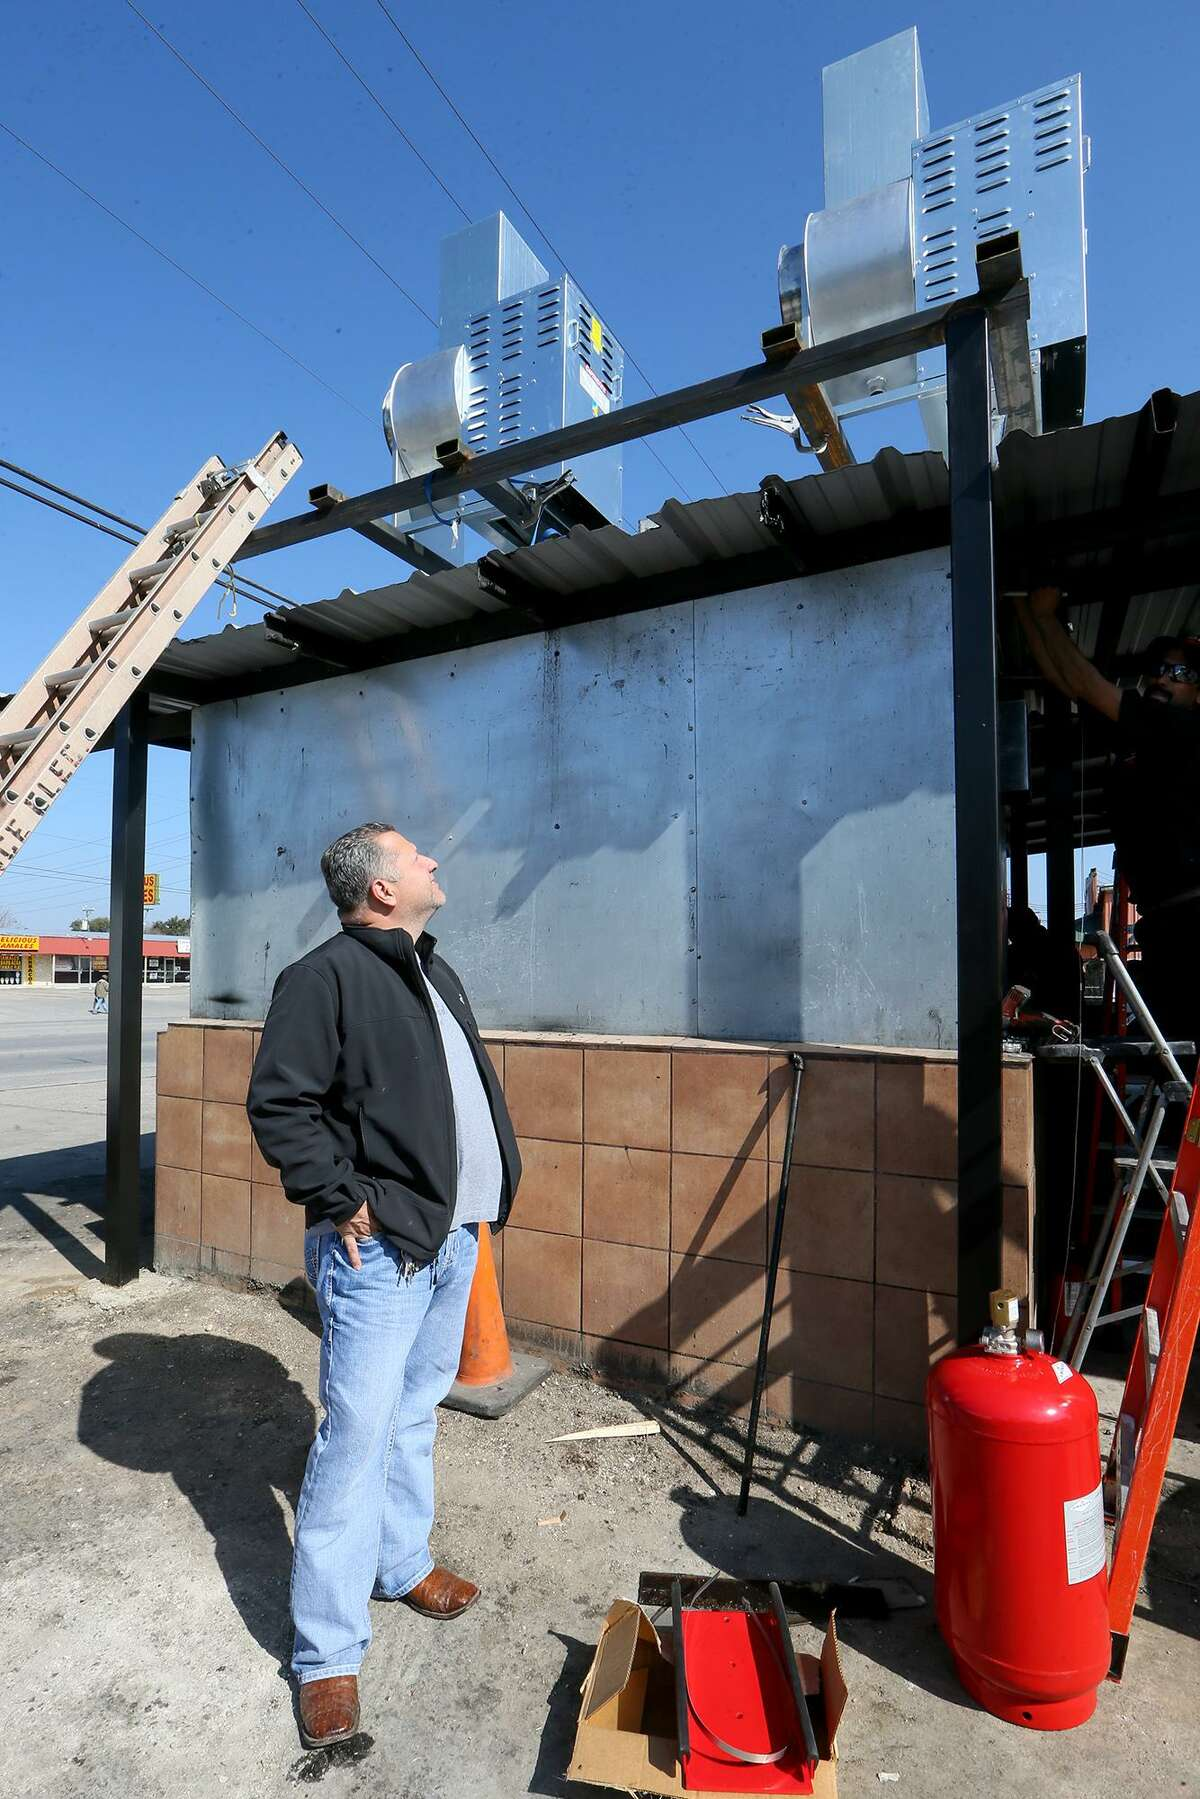 Owner Fank Garcia inspects two high velocity exhaust fans installed on the smokehouse at Pollos Asados Los Norteños in Feb. 2016. Garcia installed new fire suppression and exhaust systems, but it wasn't enough to keep government officials from shutting down the restaurant.